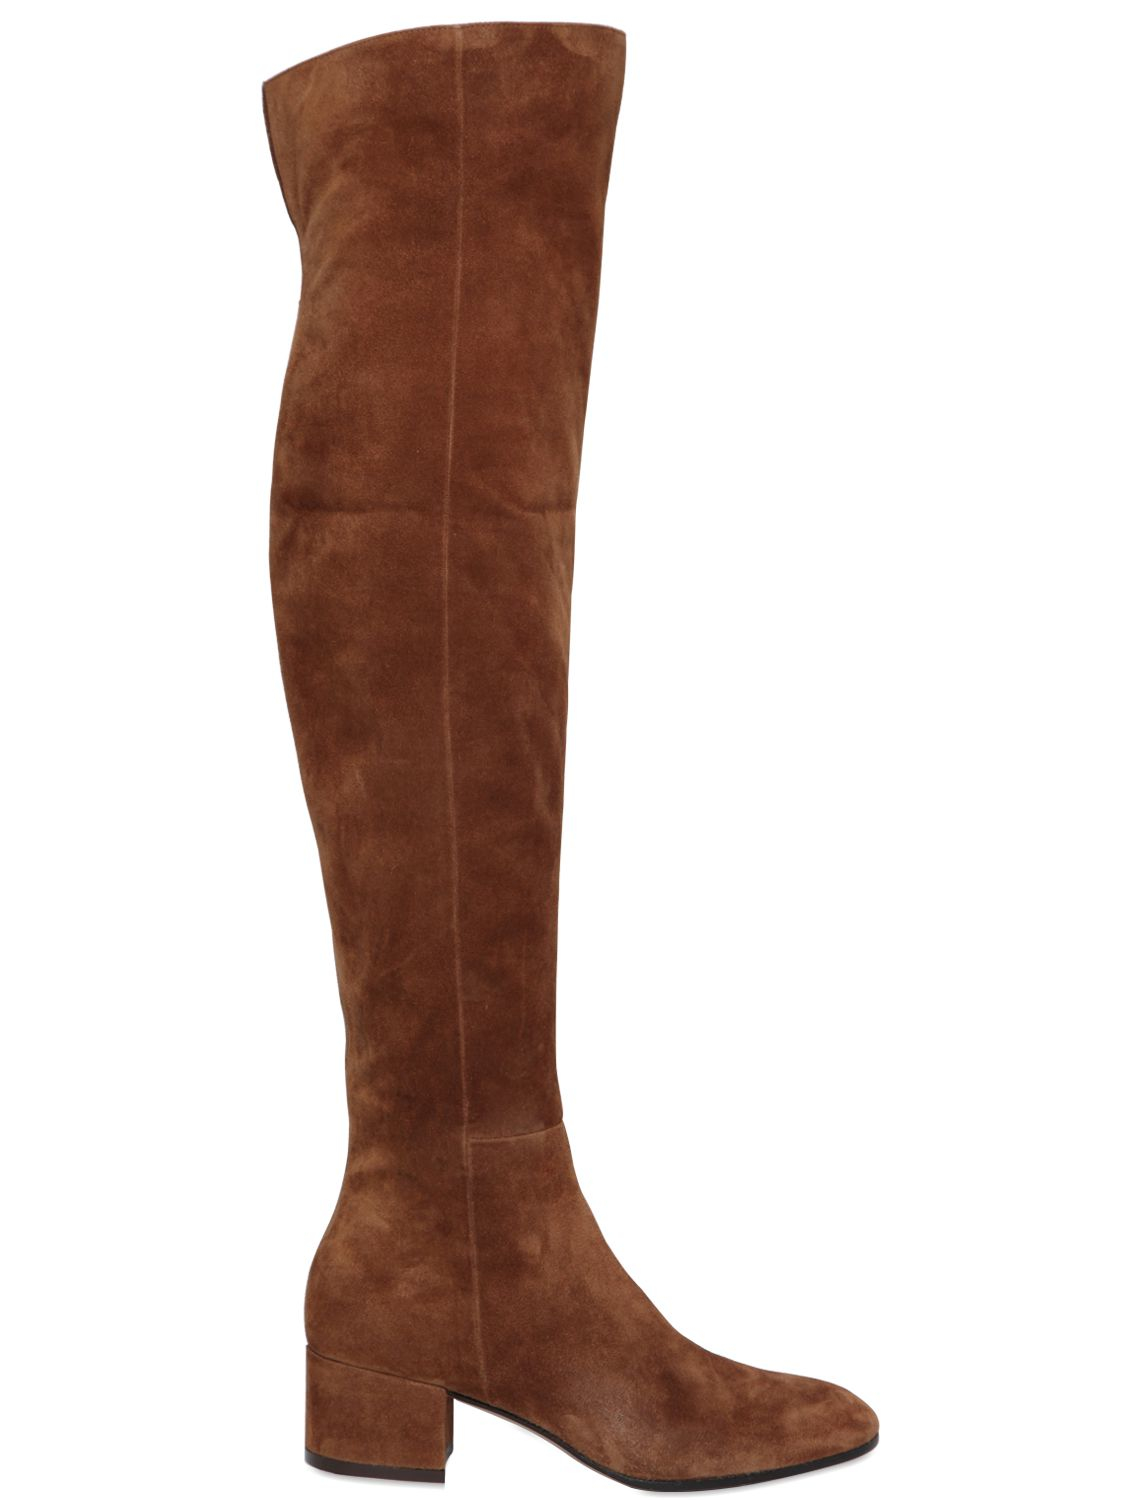 Lyst Gianvito Rossi 45mm Suede Over The Knee Boots In Brown